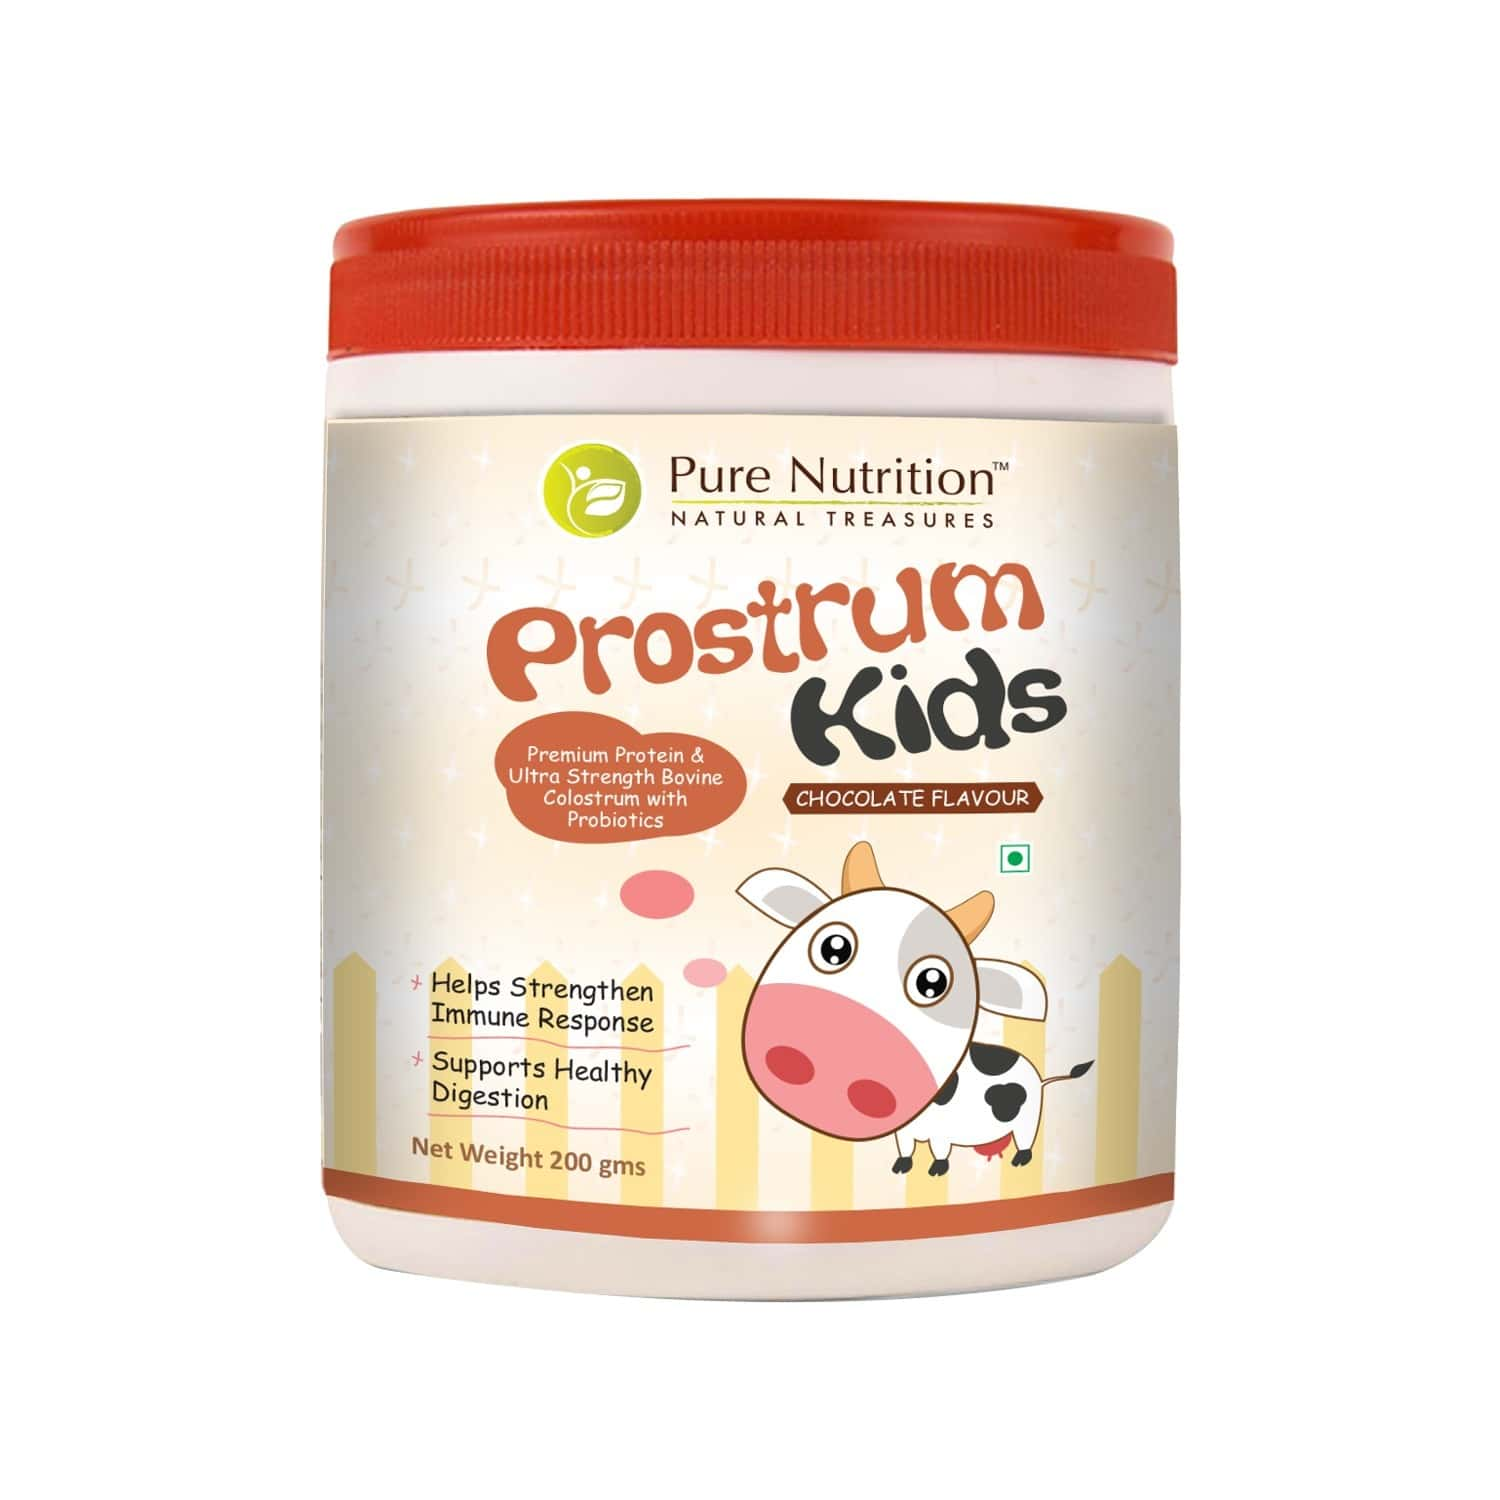 Pure Nutrition Prostrum Kids - 200 Gms